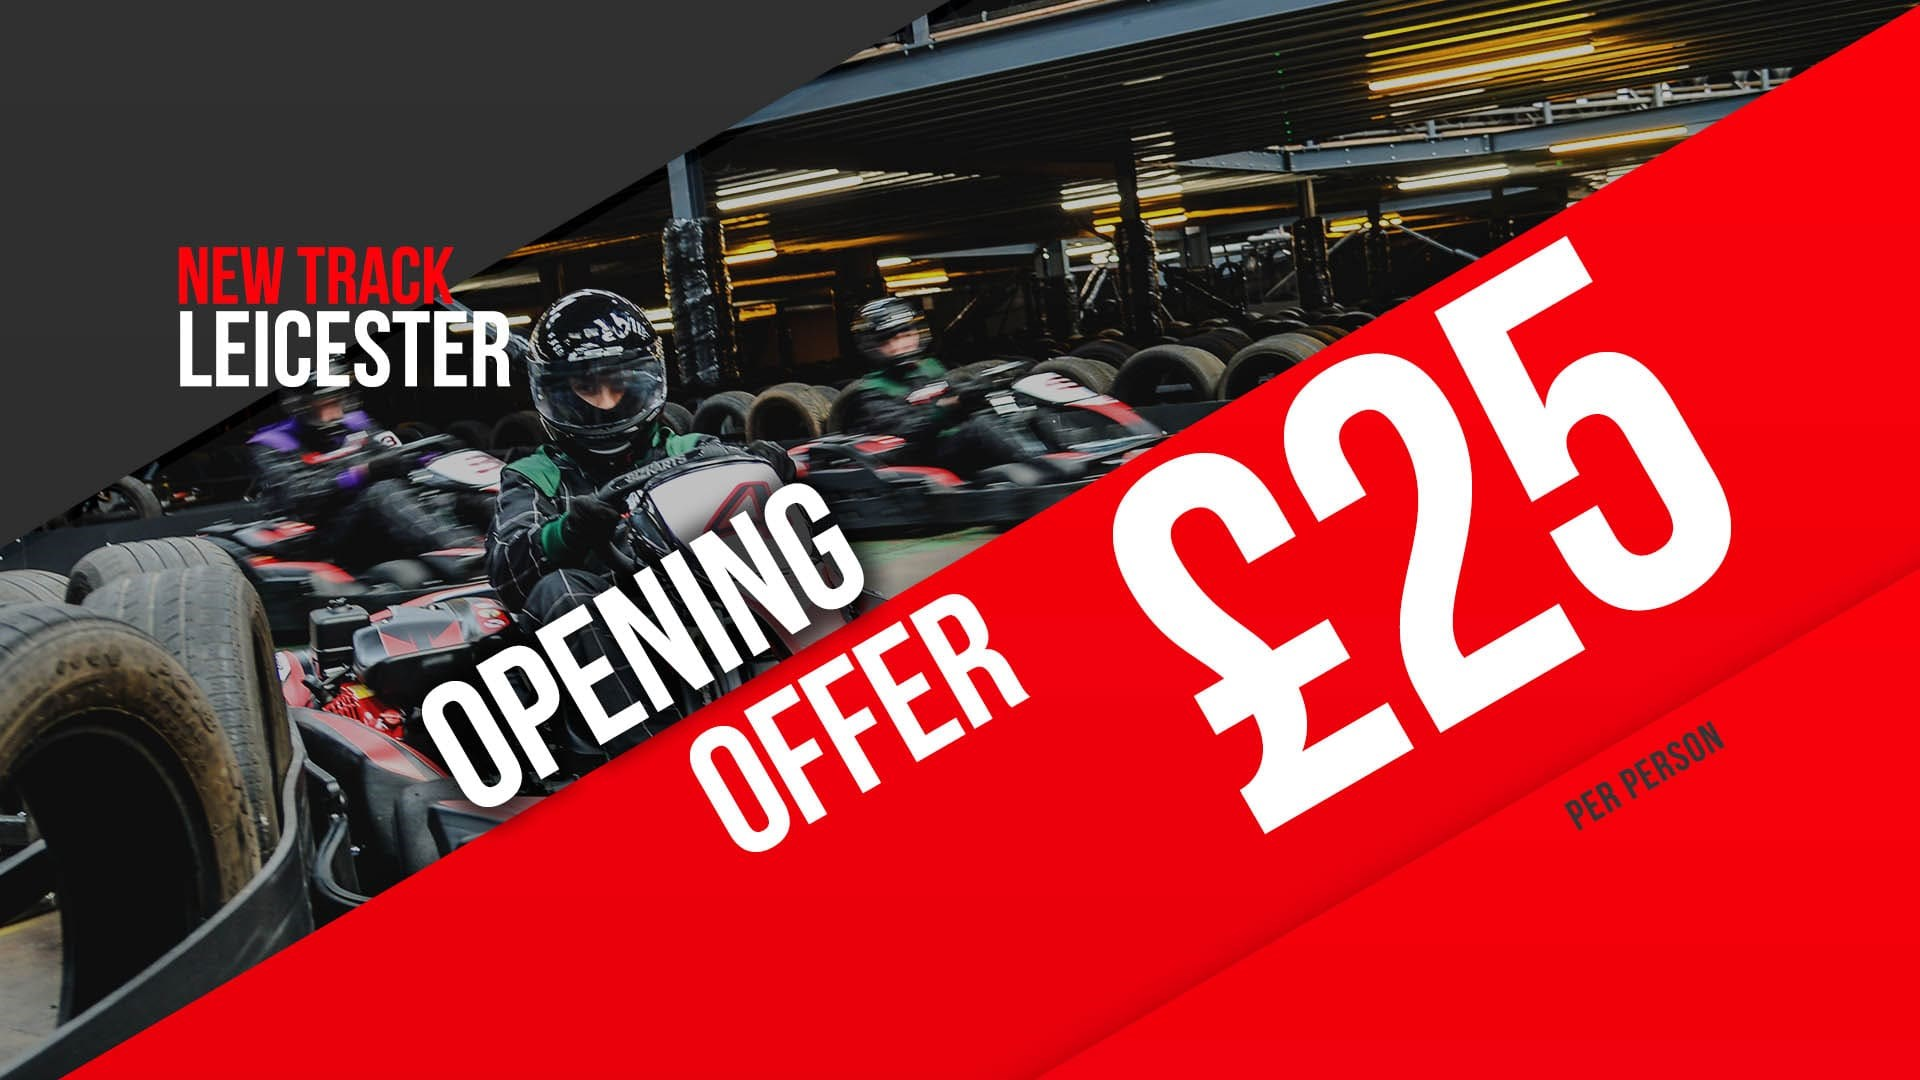 UNBEATABLE GO KARTING OFFERS - Leicester Opening Offer